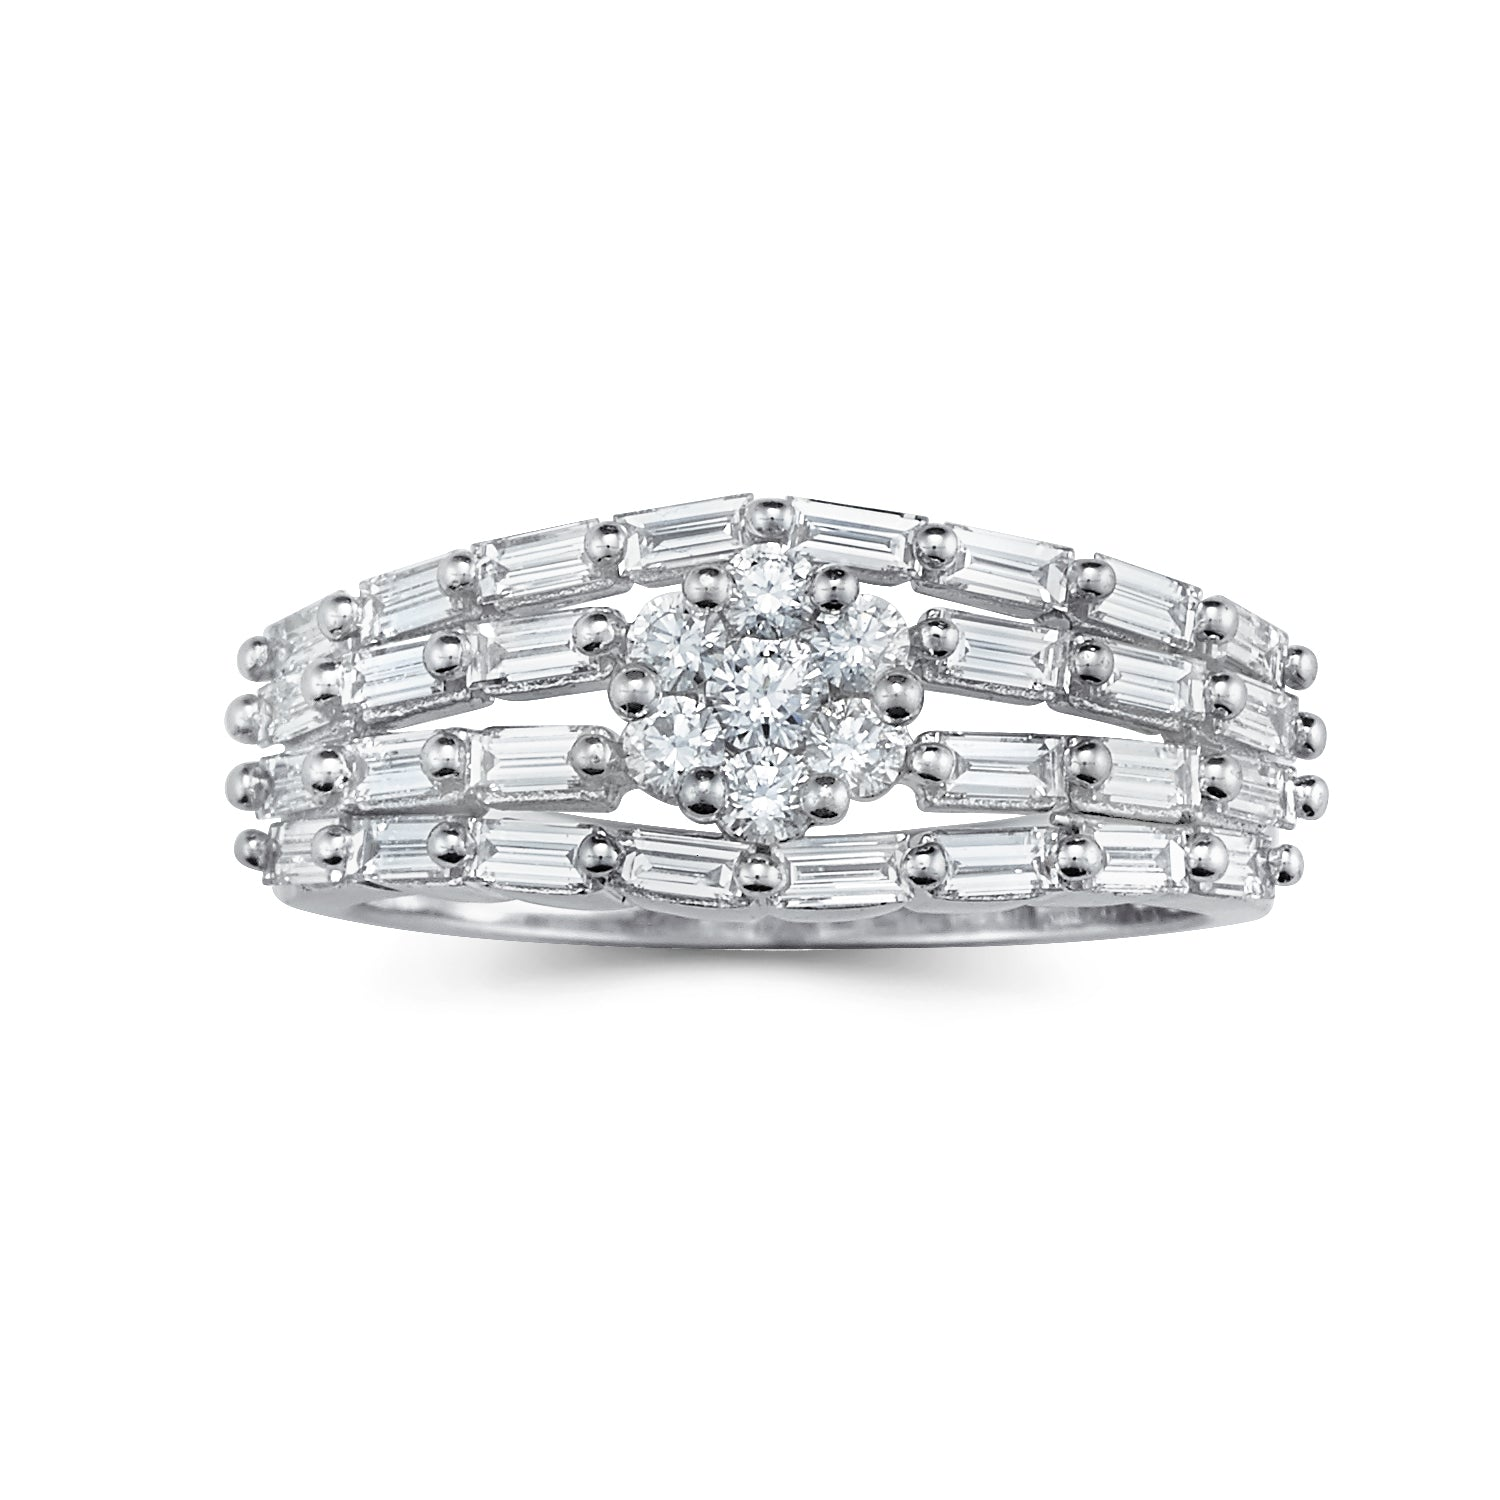 rings x round aa wynne jemma stone main diamond and pave products open engagement strand double ring image